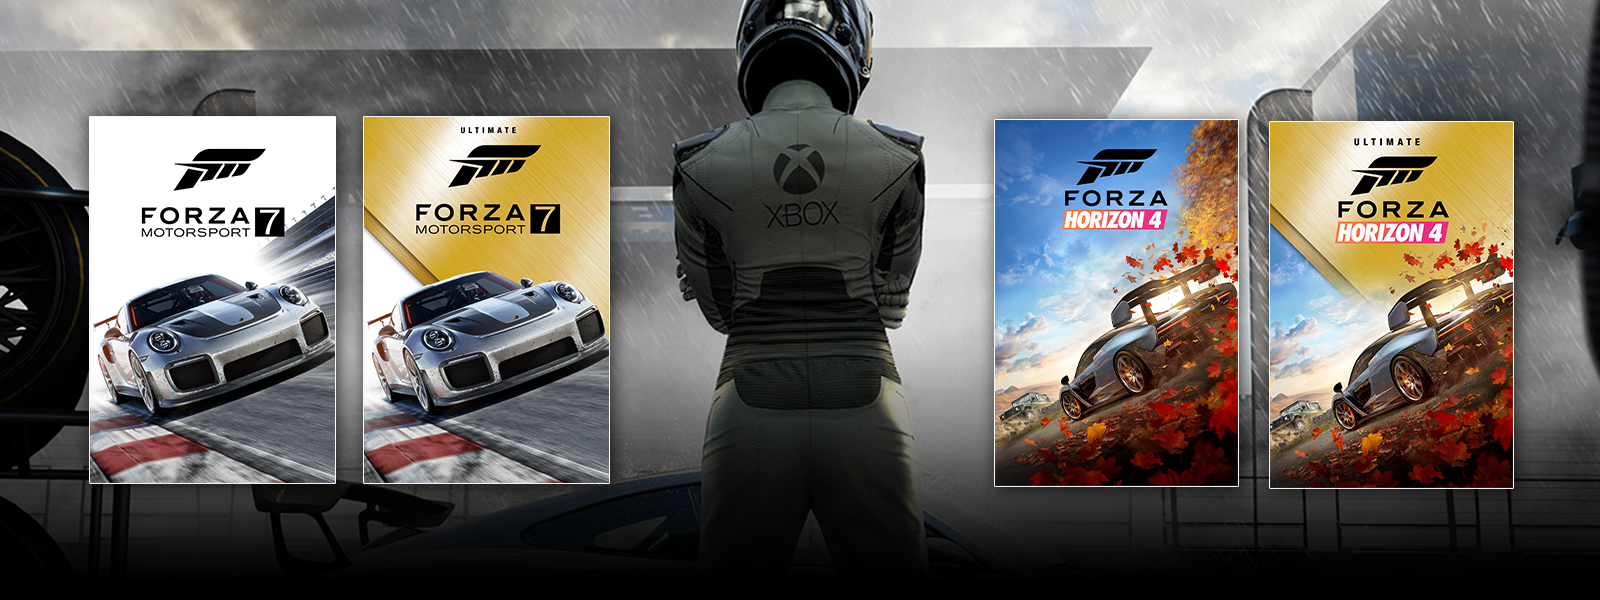 A driver stands between two sets of Forza game box shots.